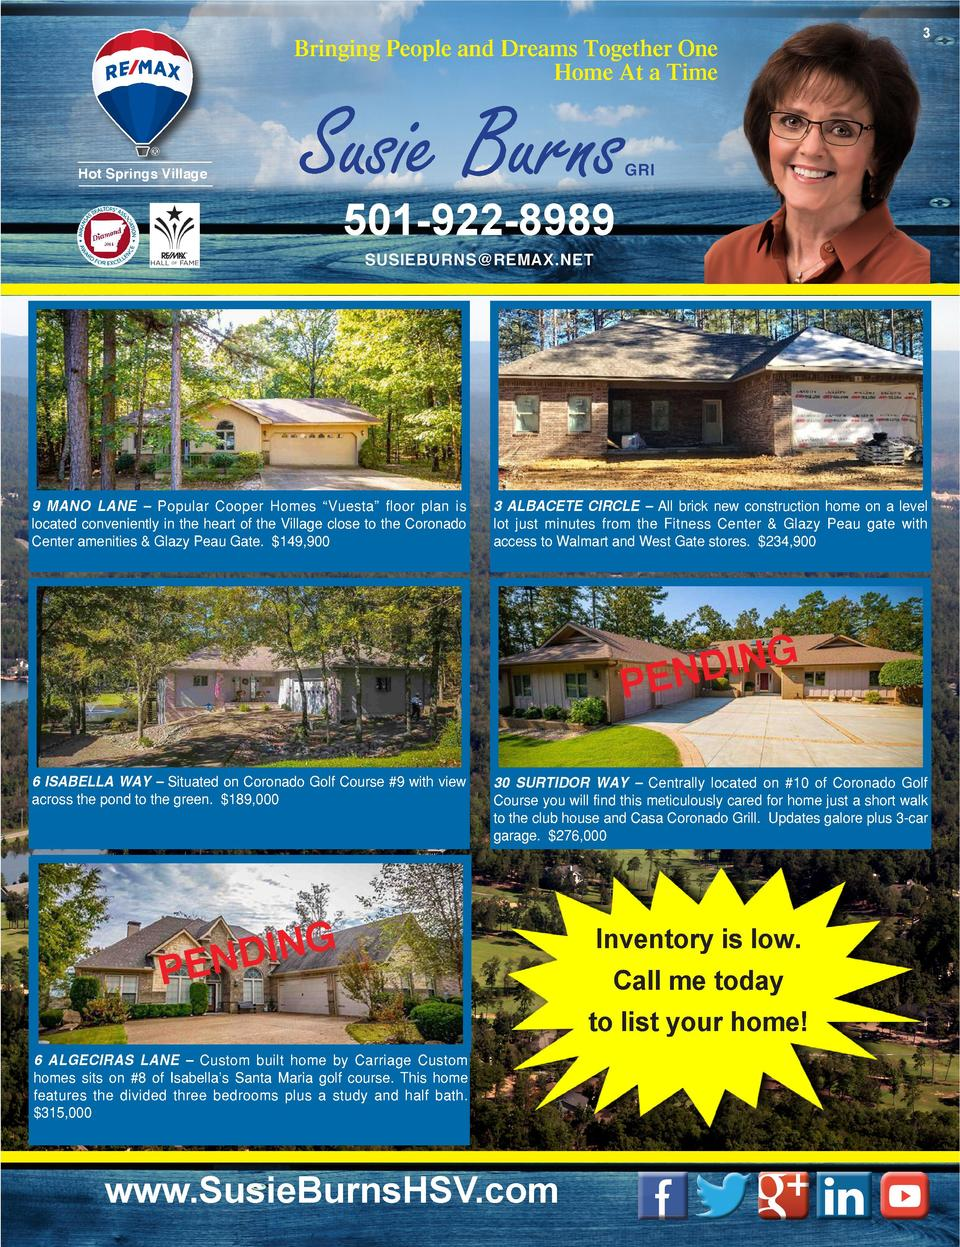 3  Bringing People and Dreams Together One Home At a Time  Hot Springs Village  Susie Burns  GRI  501-922-8989 SUSIEBURNS ...